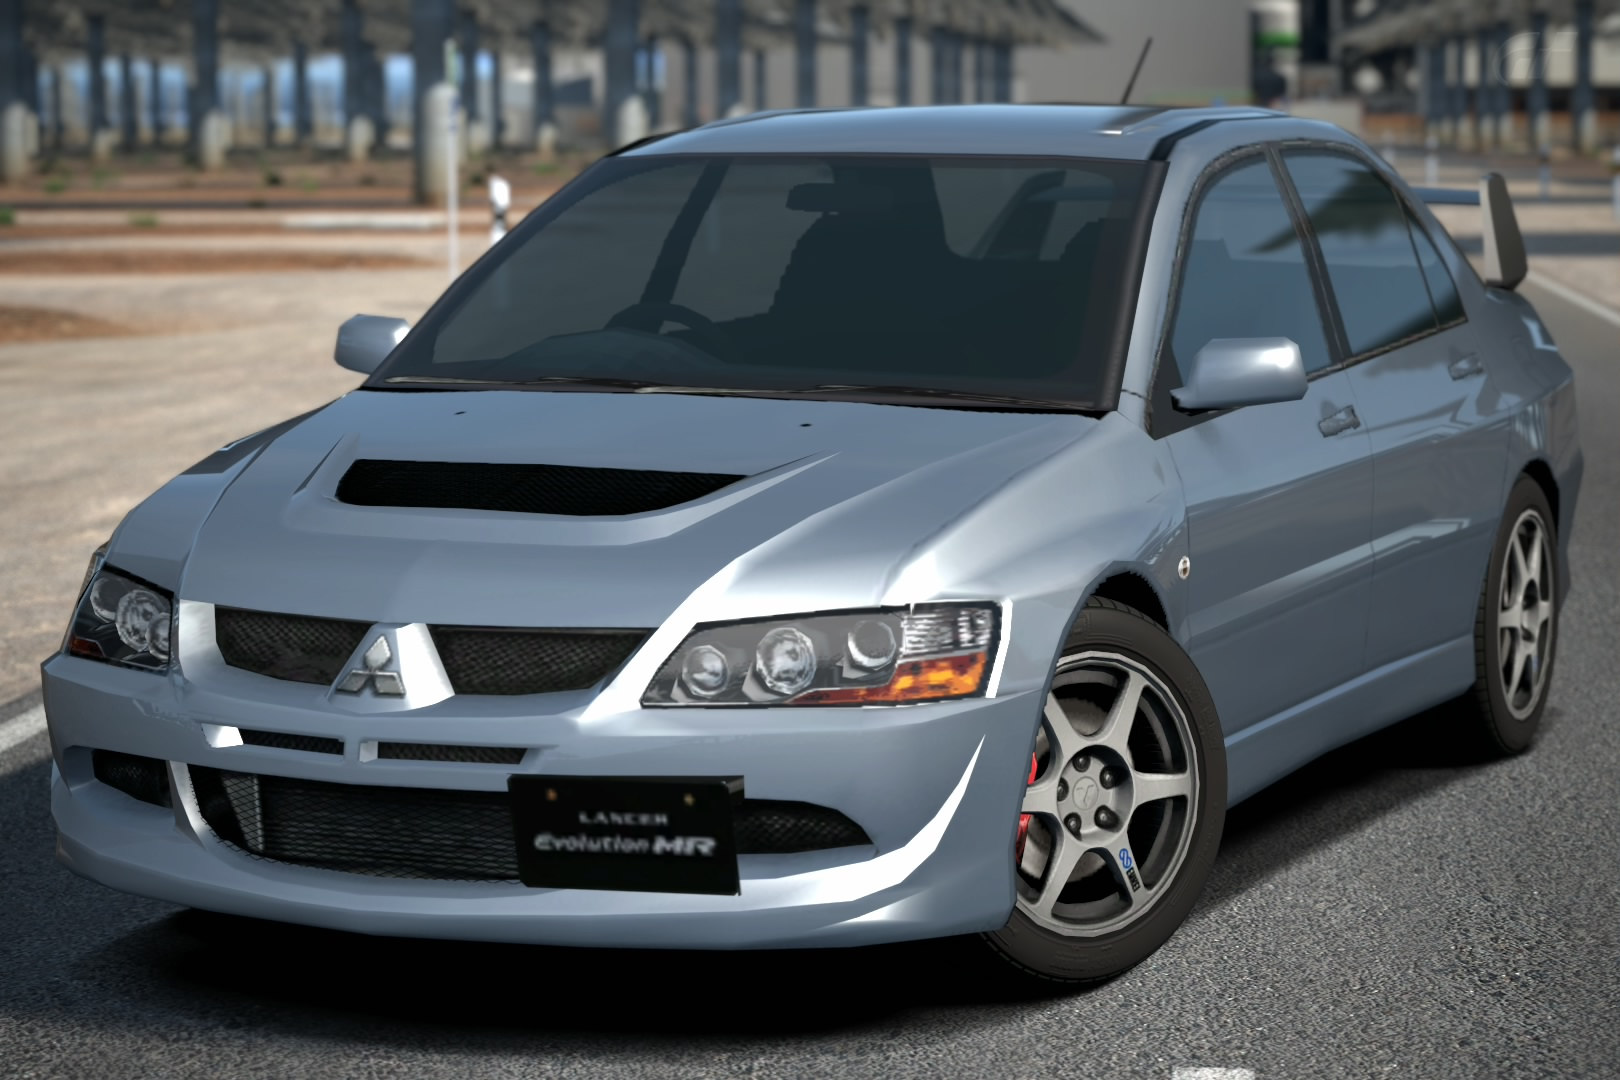 mitsubishi lancer evolution viii mr gsr 39 04 gran turismo wiki fandom powered by wikia